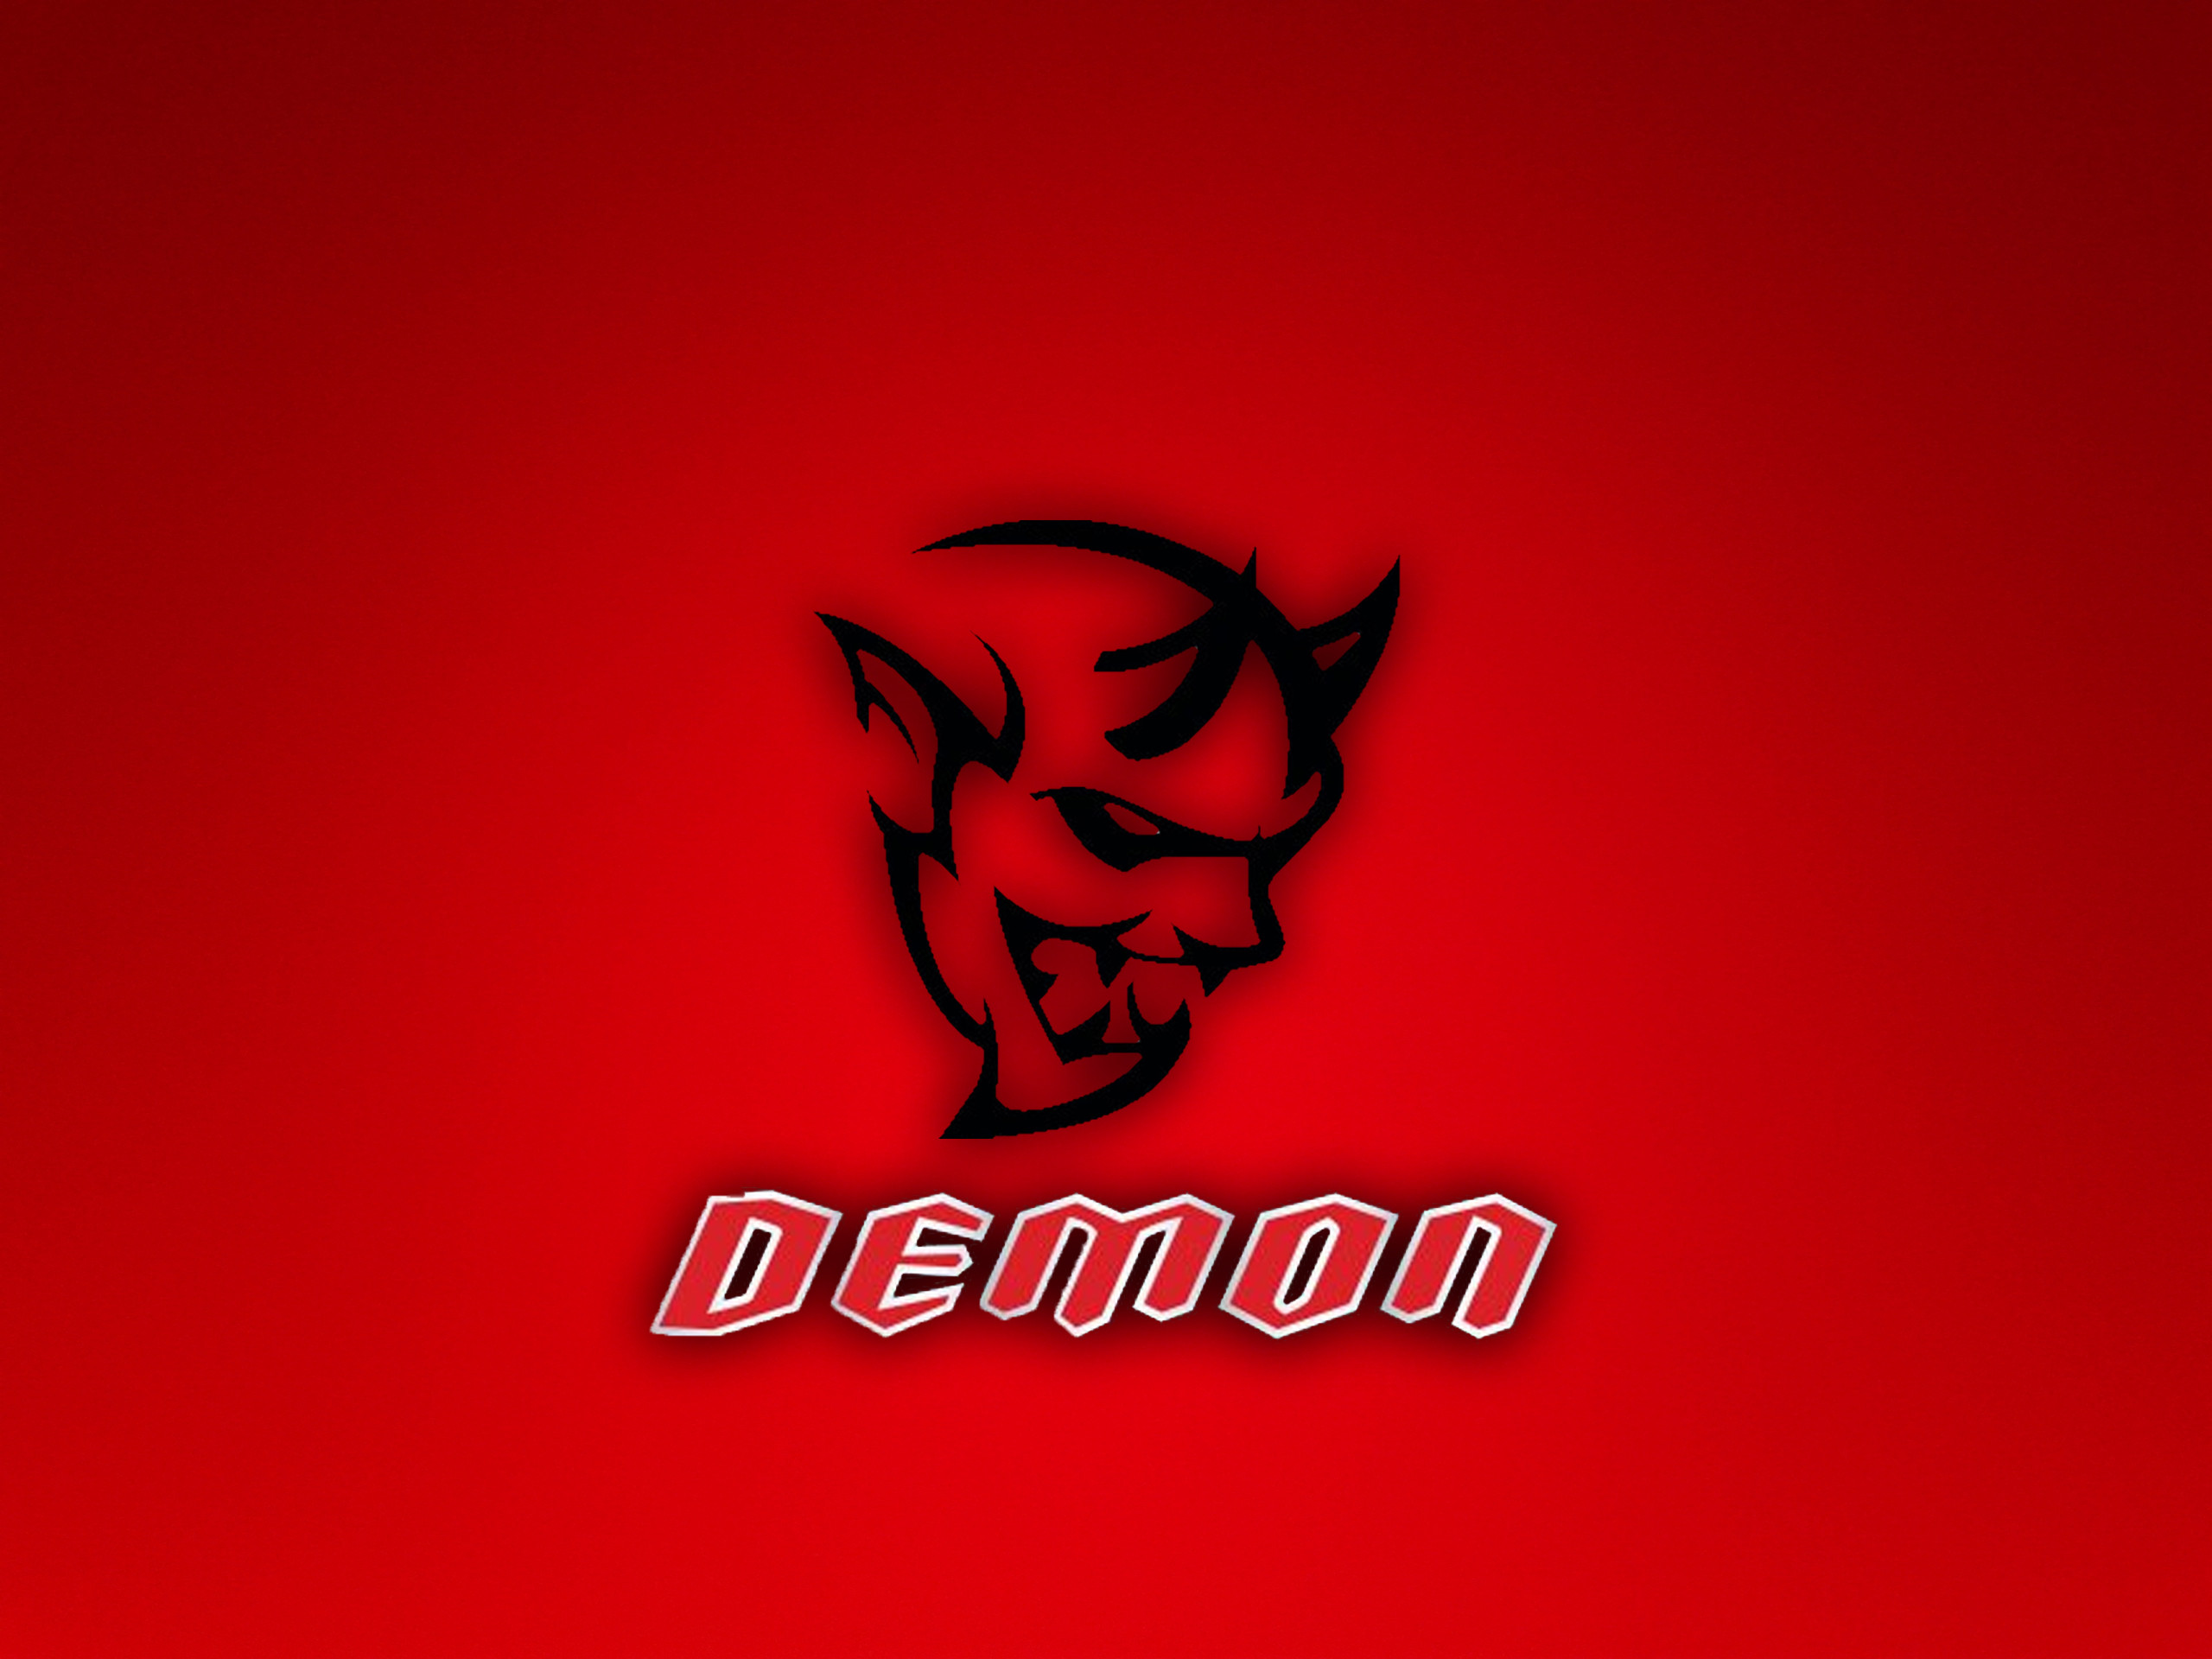 Dodge Challenger Demon Logo Wallpaper By Thetinychicken Dodge Challenger 2560x1920 Wallpaper Teahub Io